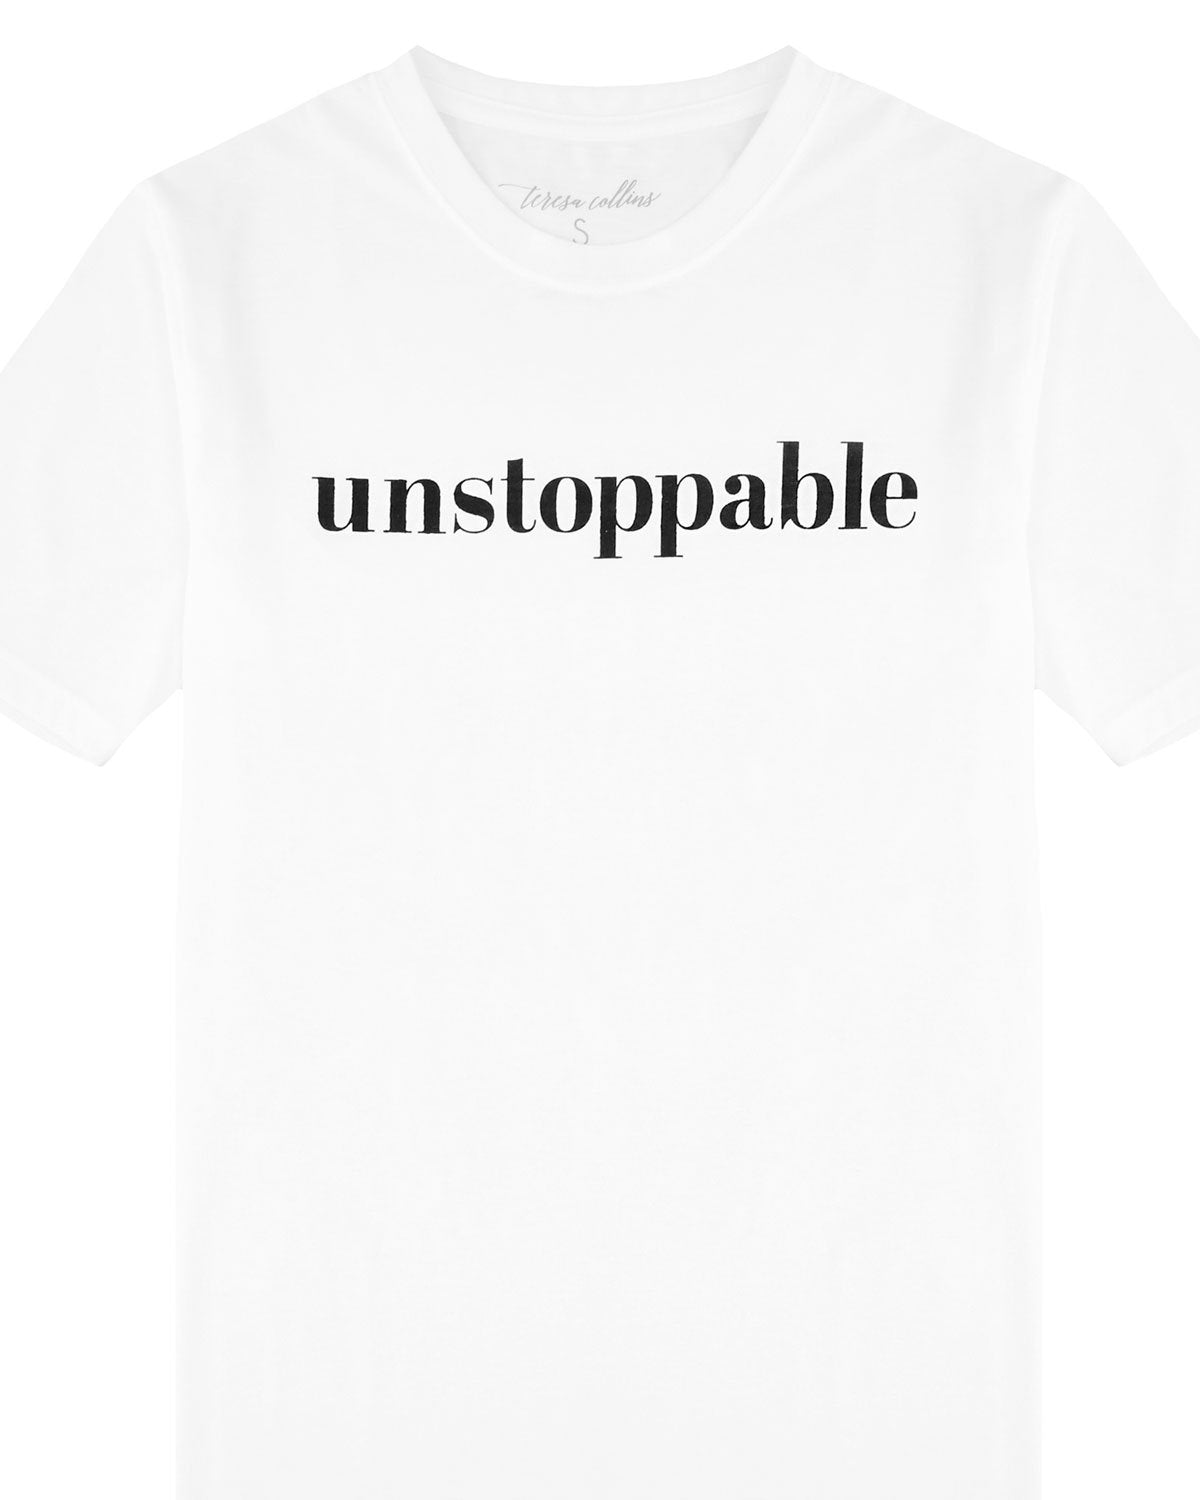 Unstoppable T-Shirt | White - Teresa Collins Studio